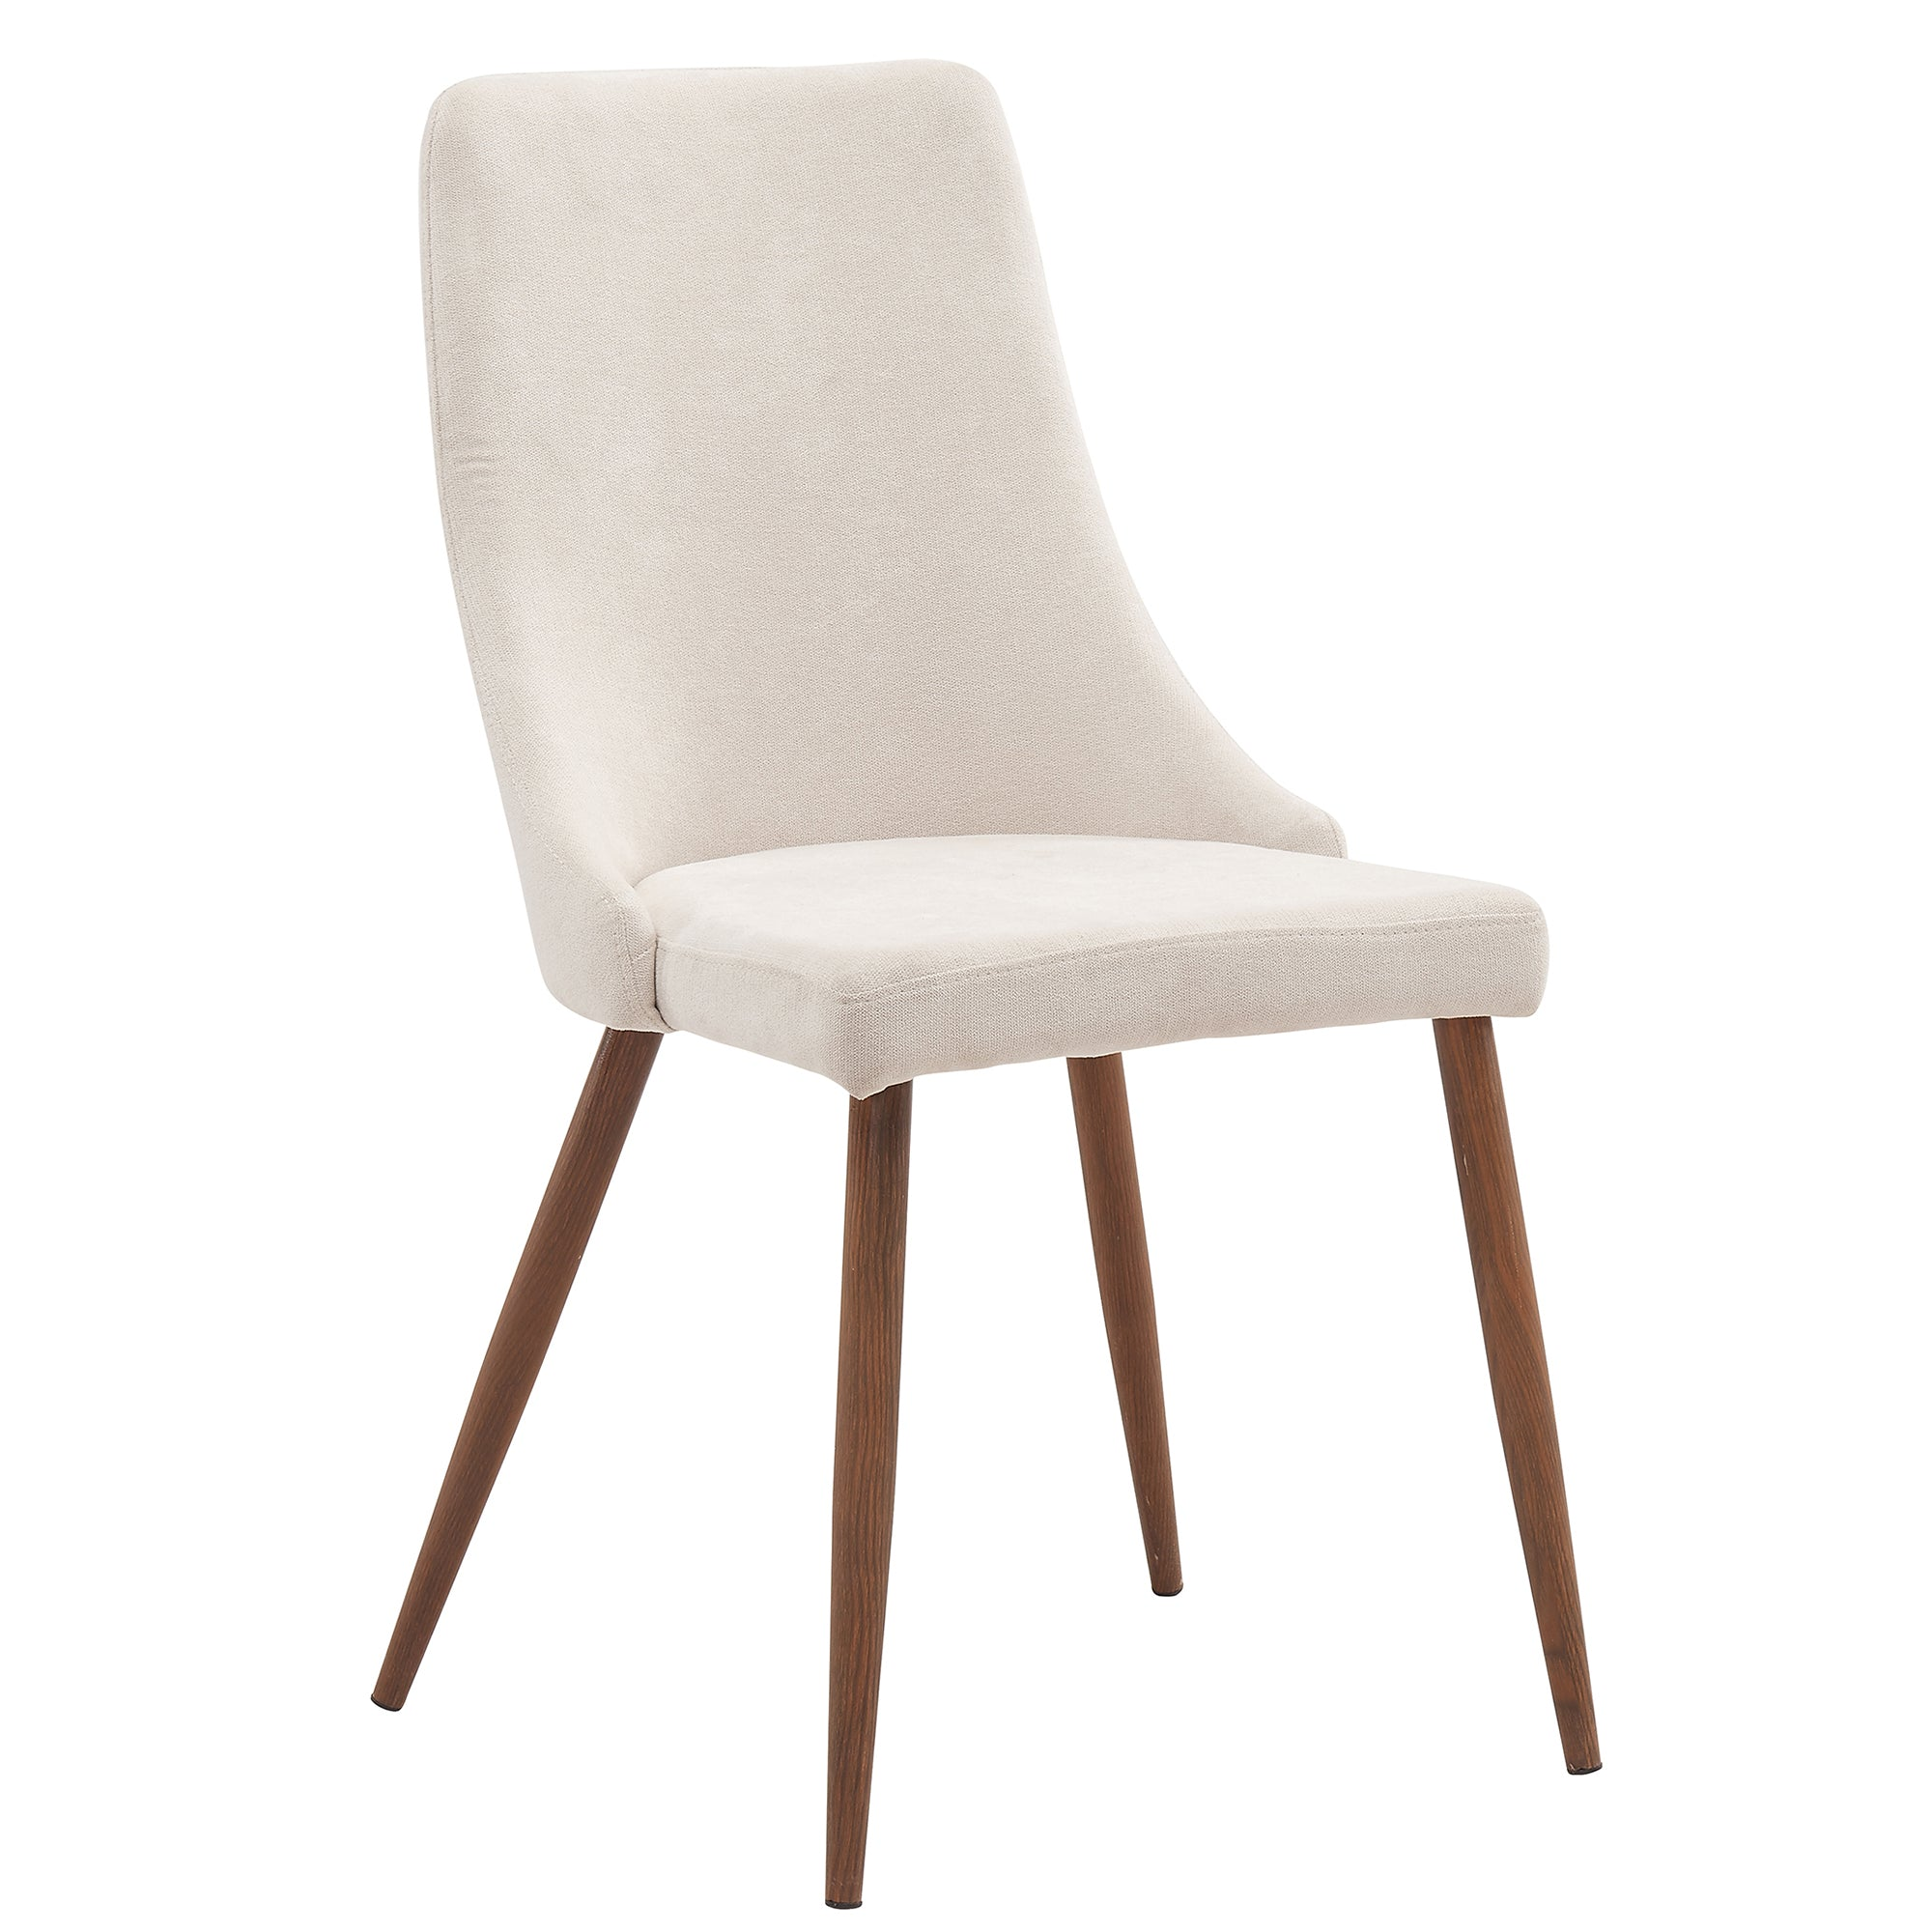 Cora Side Chair - Beige